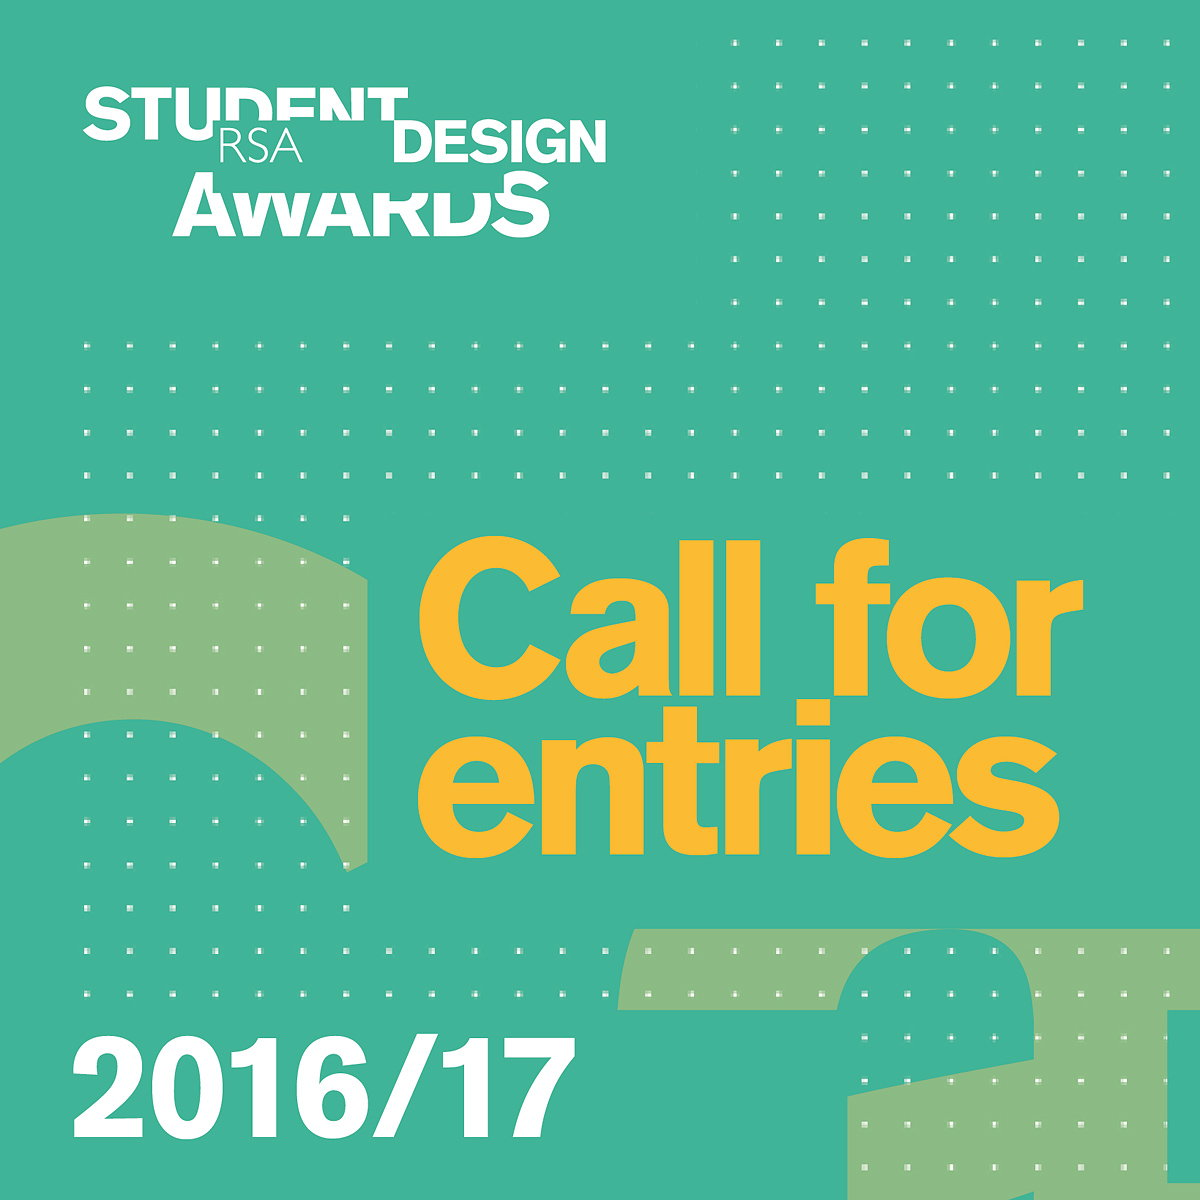 2016/2017 RSA Student Design Awards